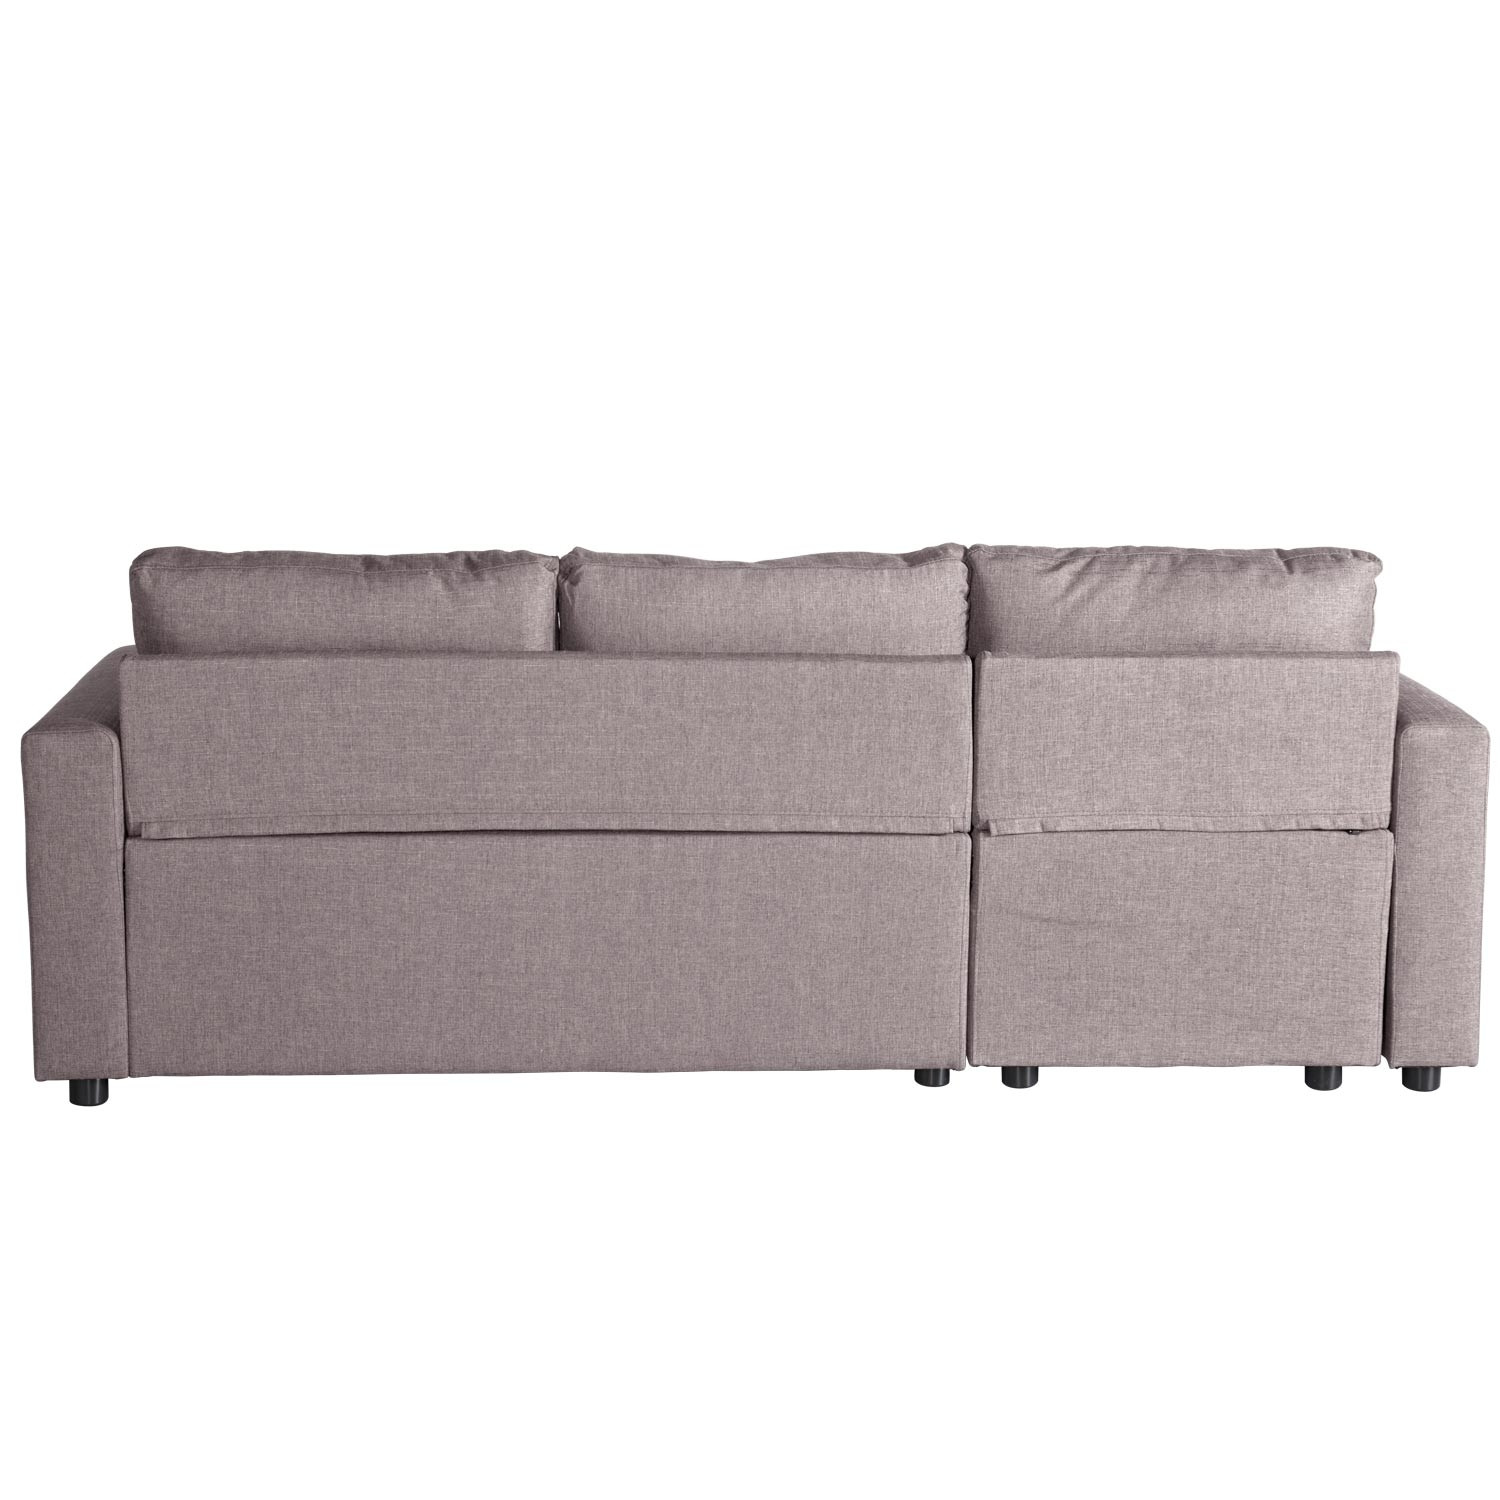 Chaise Longue Cama Baratos Innovador Pra Online sofá Cama Chaise Longue Adara Barato 490 00 Of Chaise Longue Cama Baratos Mejor sofa Chaise Longue Barato Long with 1 Cama Segunda Mano